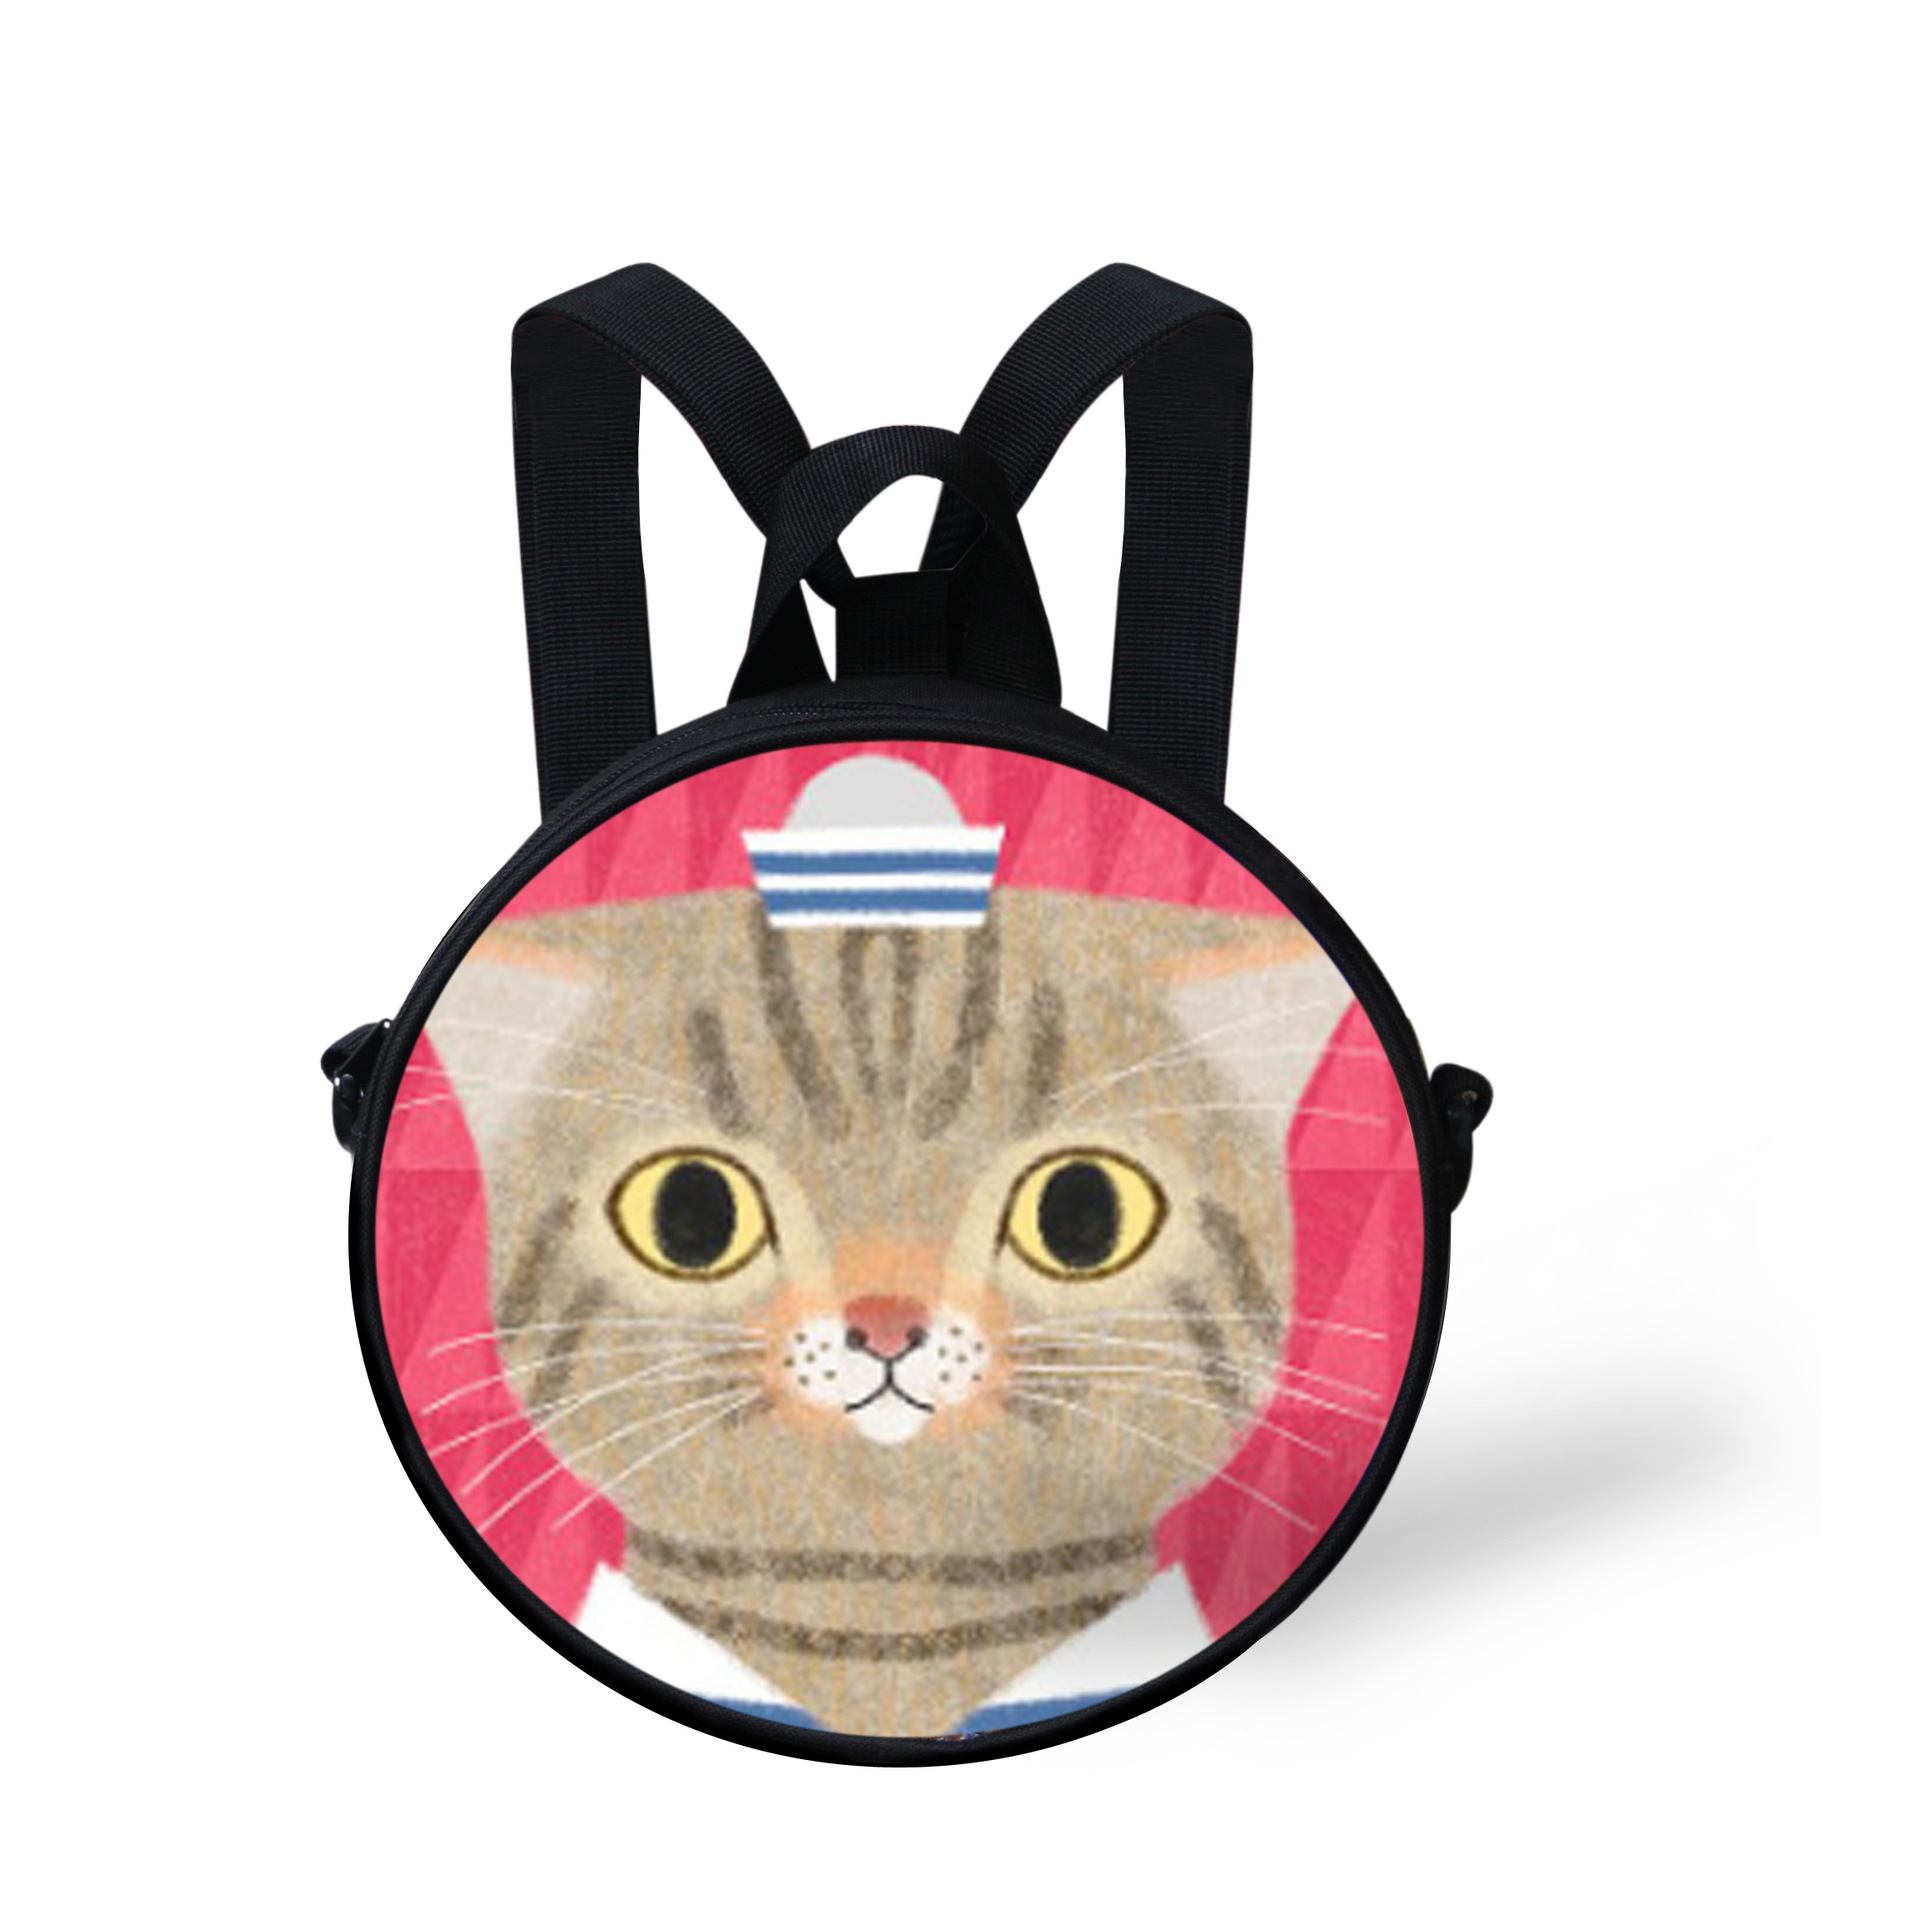 Cute Cartoon Cat Round Kids Bags 3D Cat Smiling Faces Messenger Bags Dual-use Bags for Boys Girls Casual Portable Children Bags(China (Mainland))